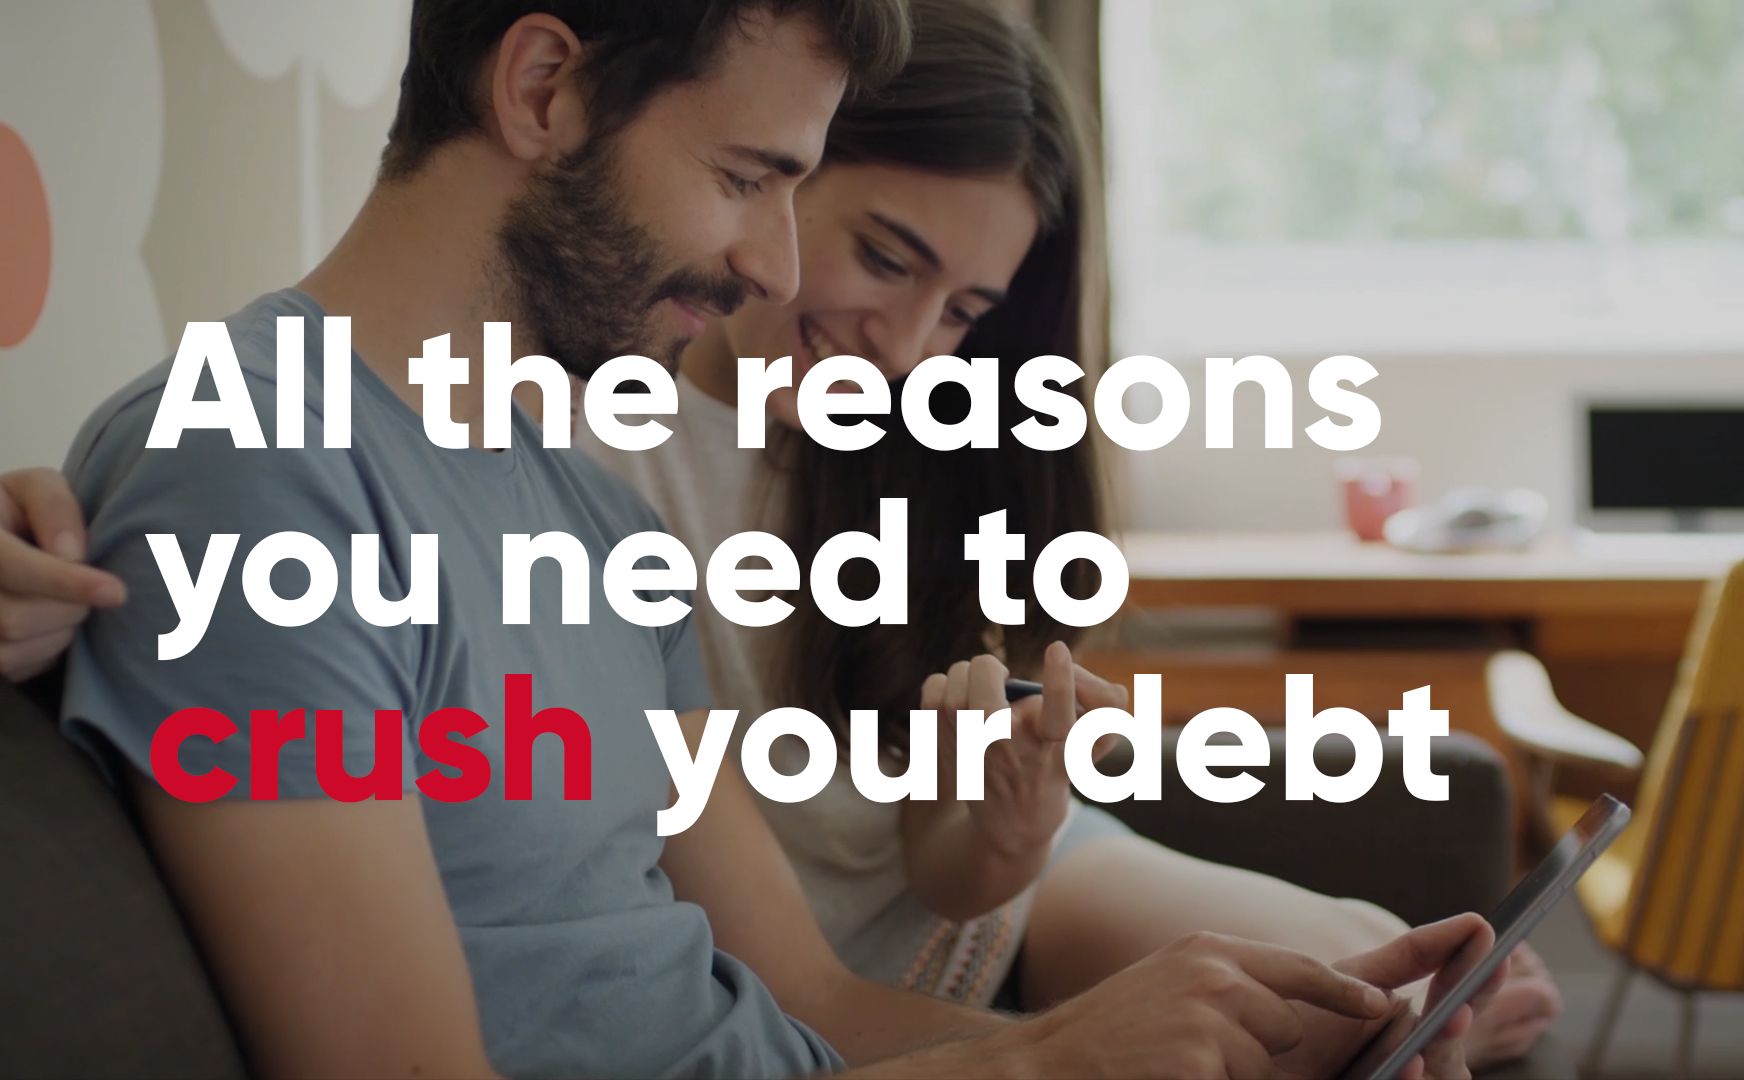 Why you should crush your credit debt with the Great Aussie Credit Crush